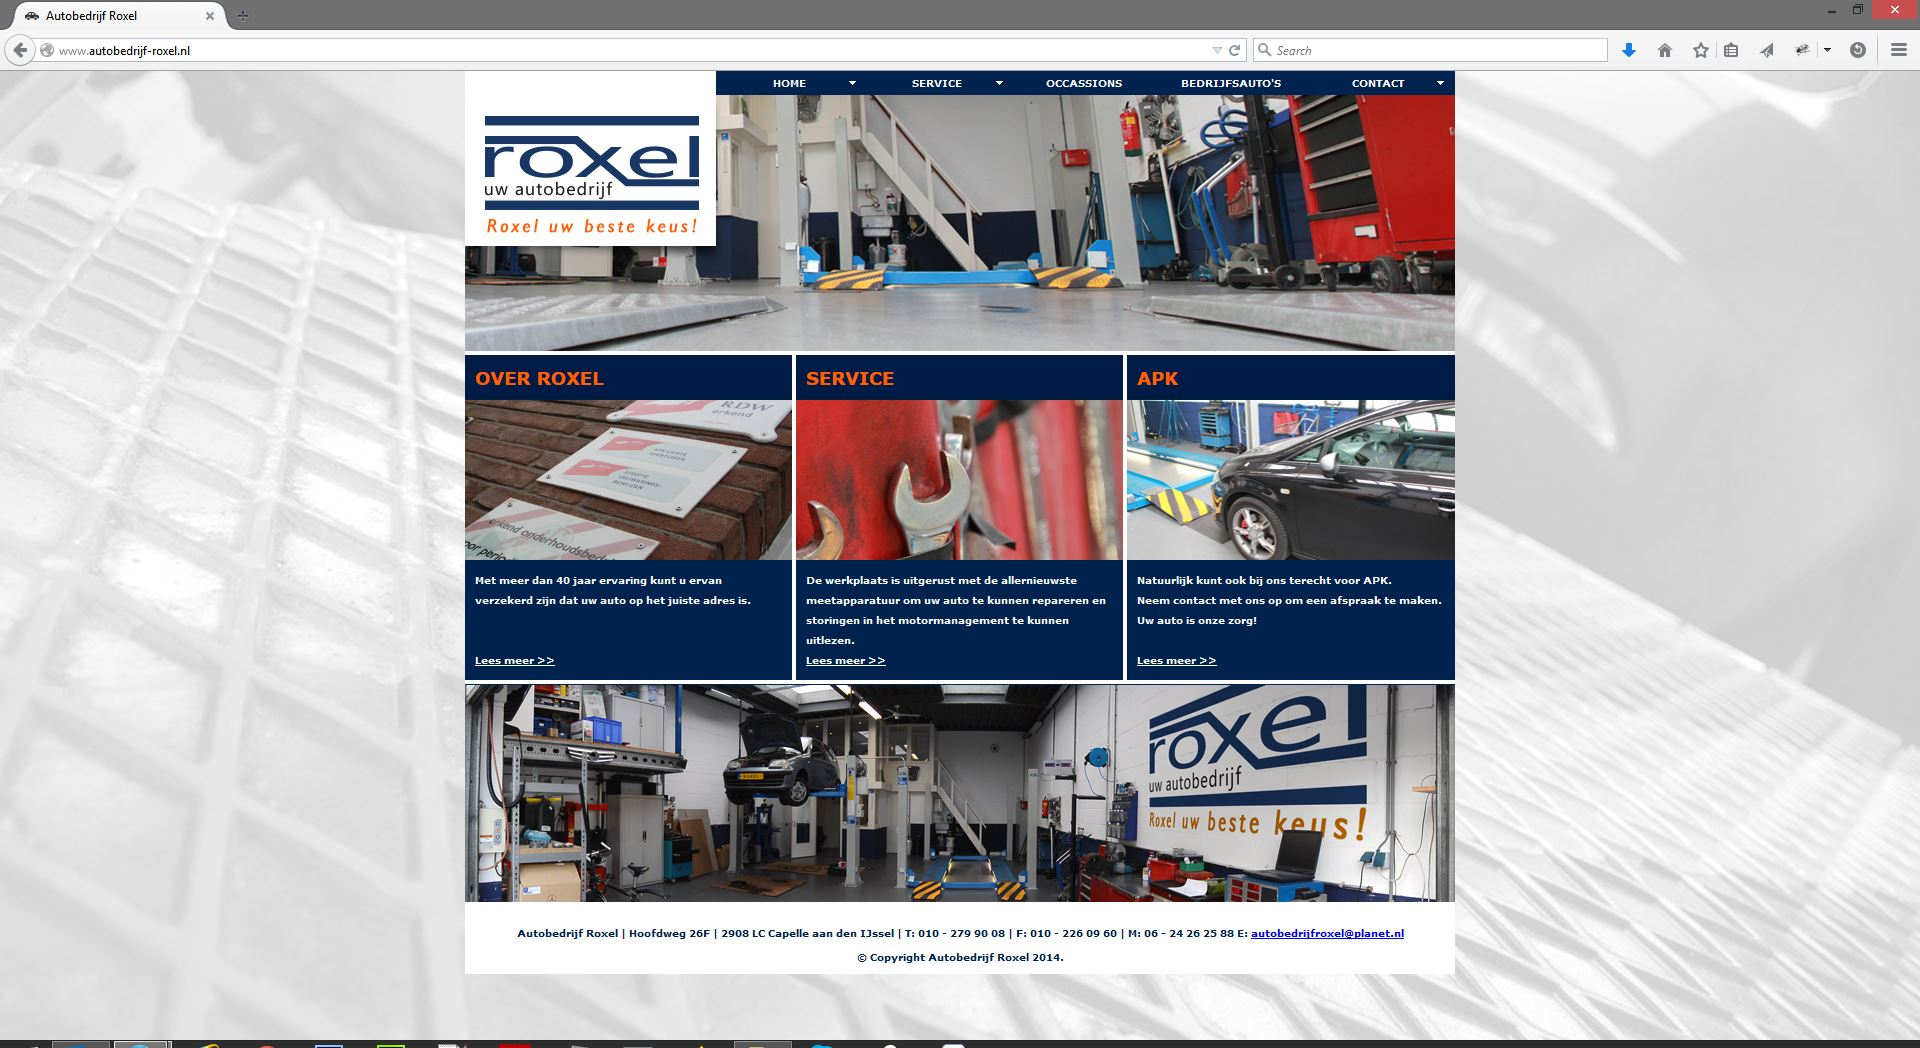 Roxel website